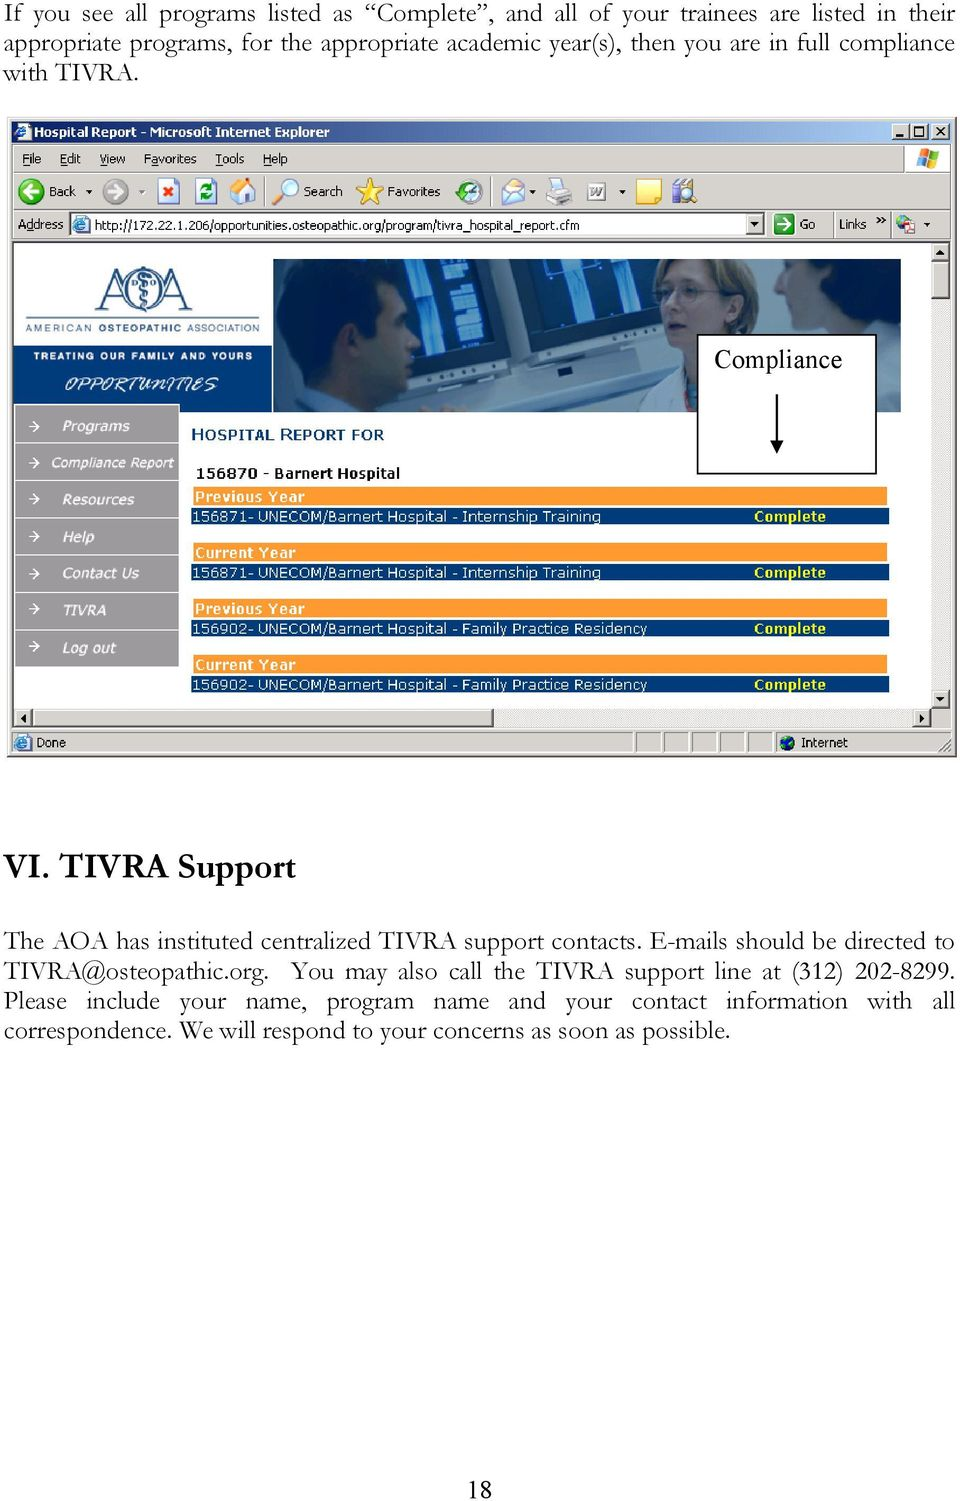 TIVRA Support The AOA has instituted centralized TIVRA support contacts. E-mails should be directed to TIVRA@osteopathic.org.